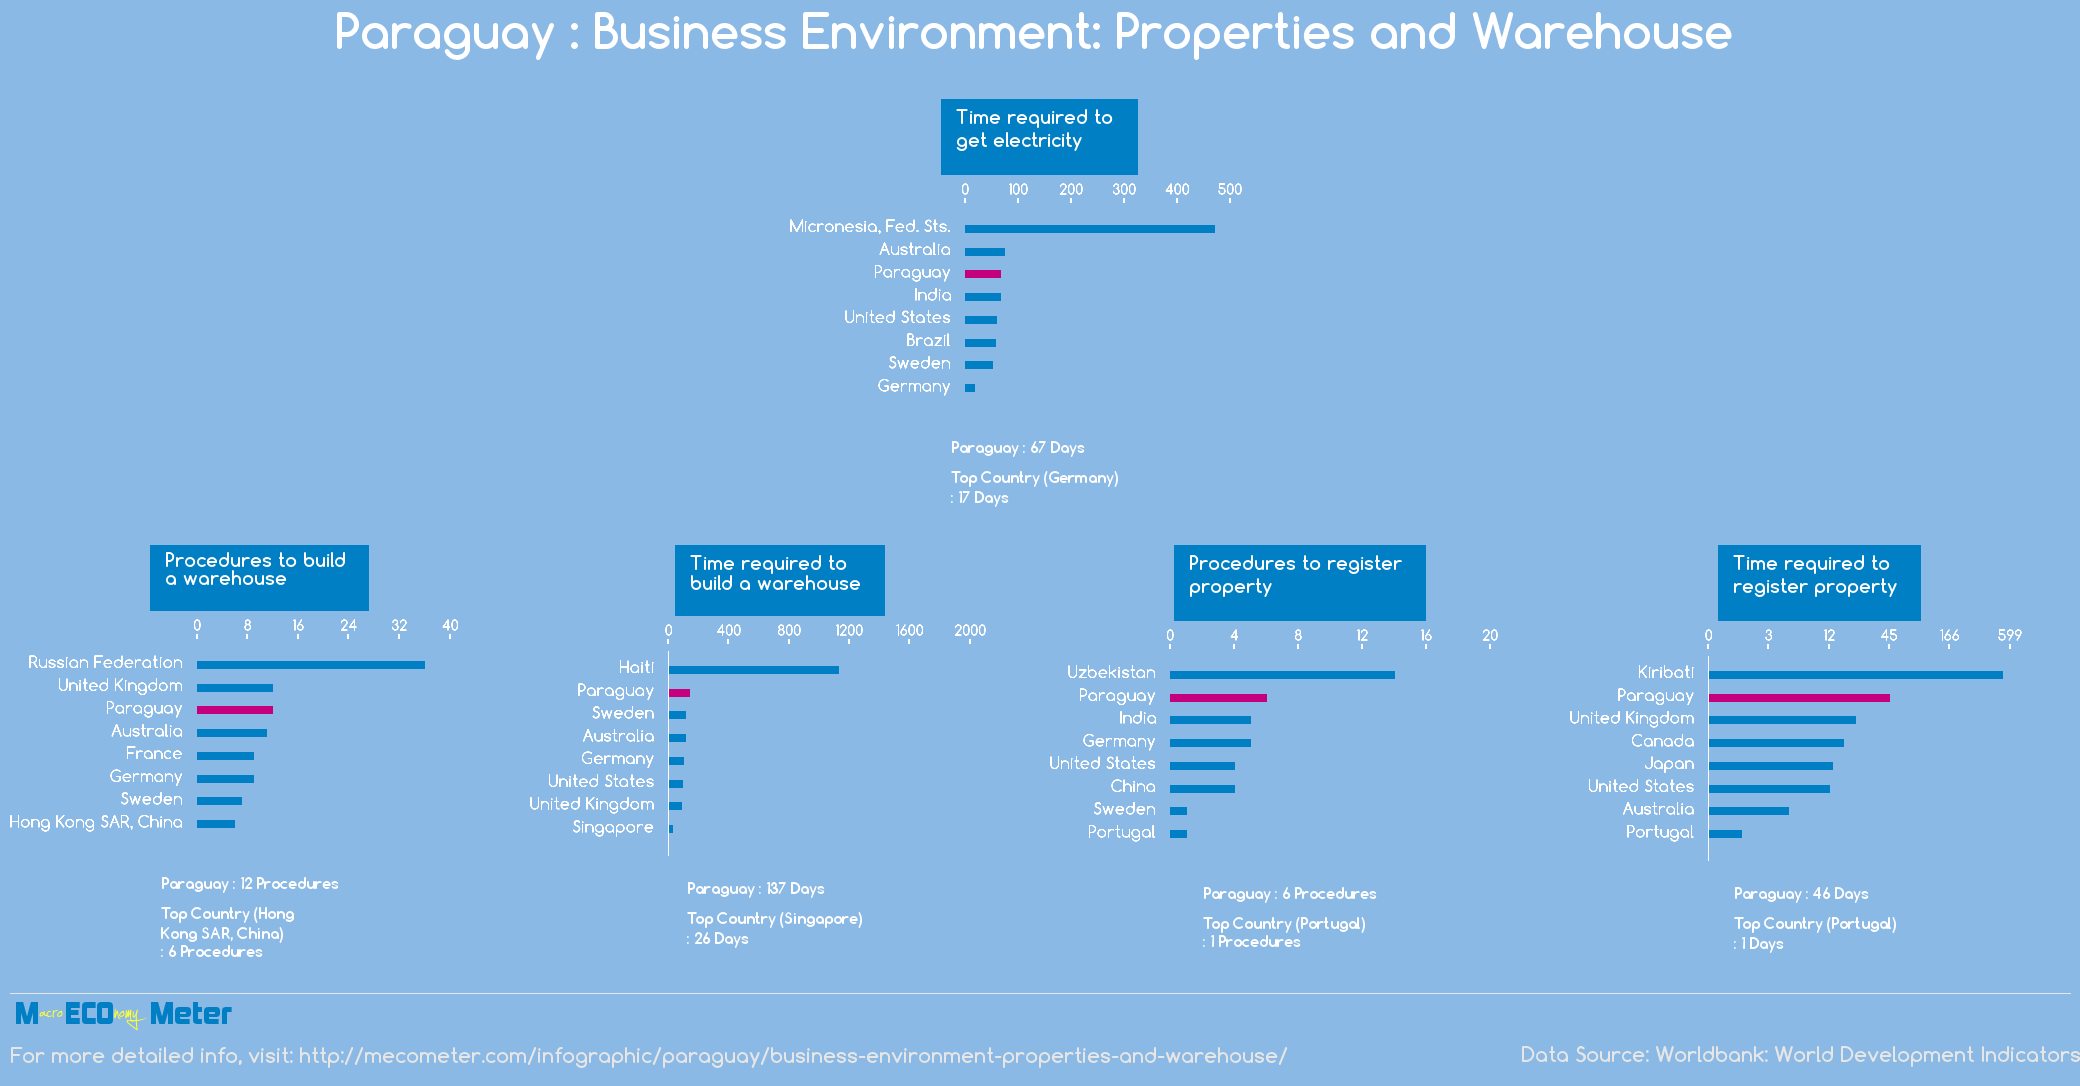 Paraguay : Business Environment: Properties and Warehouse